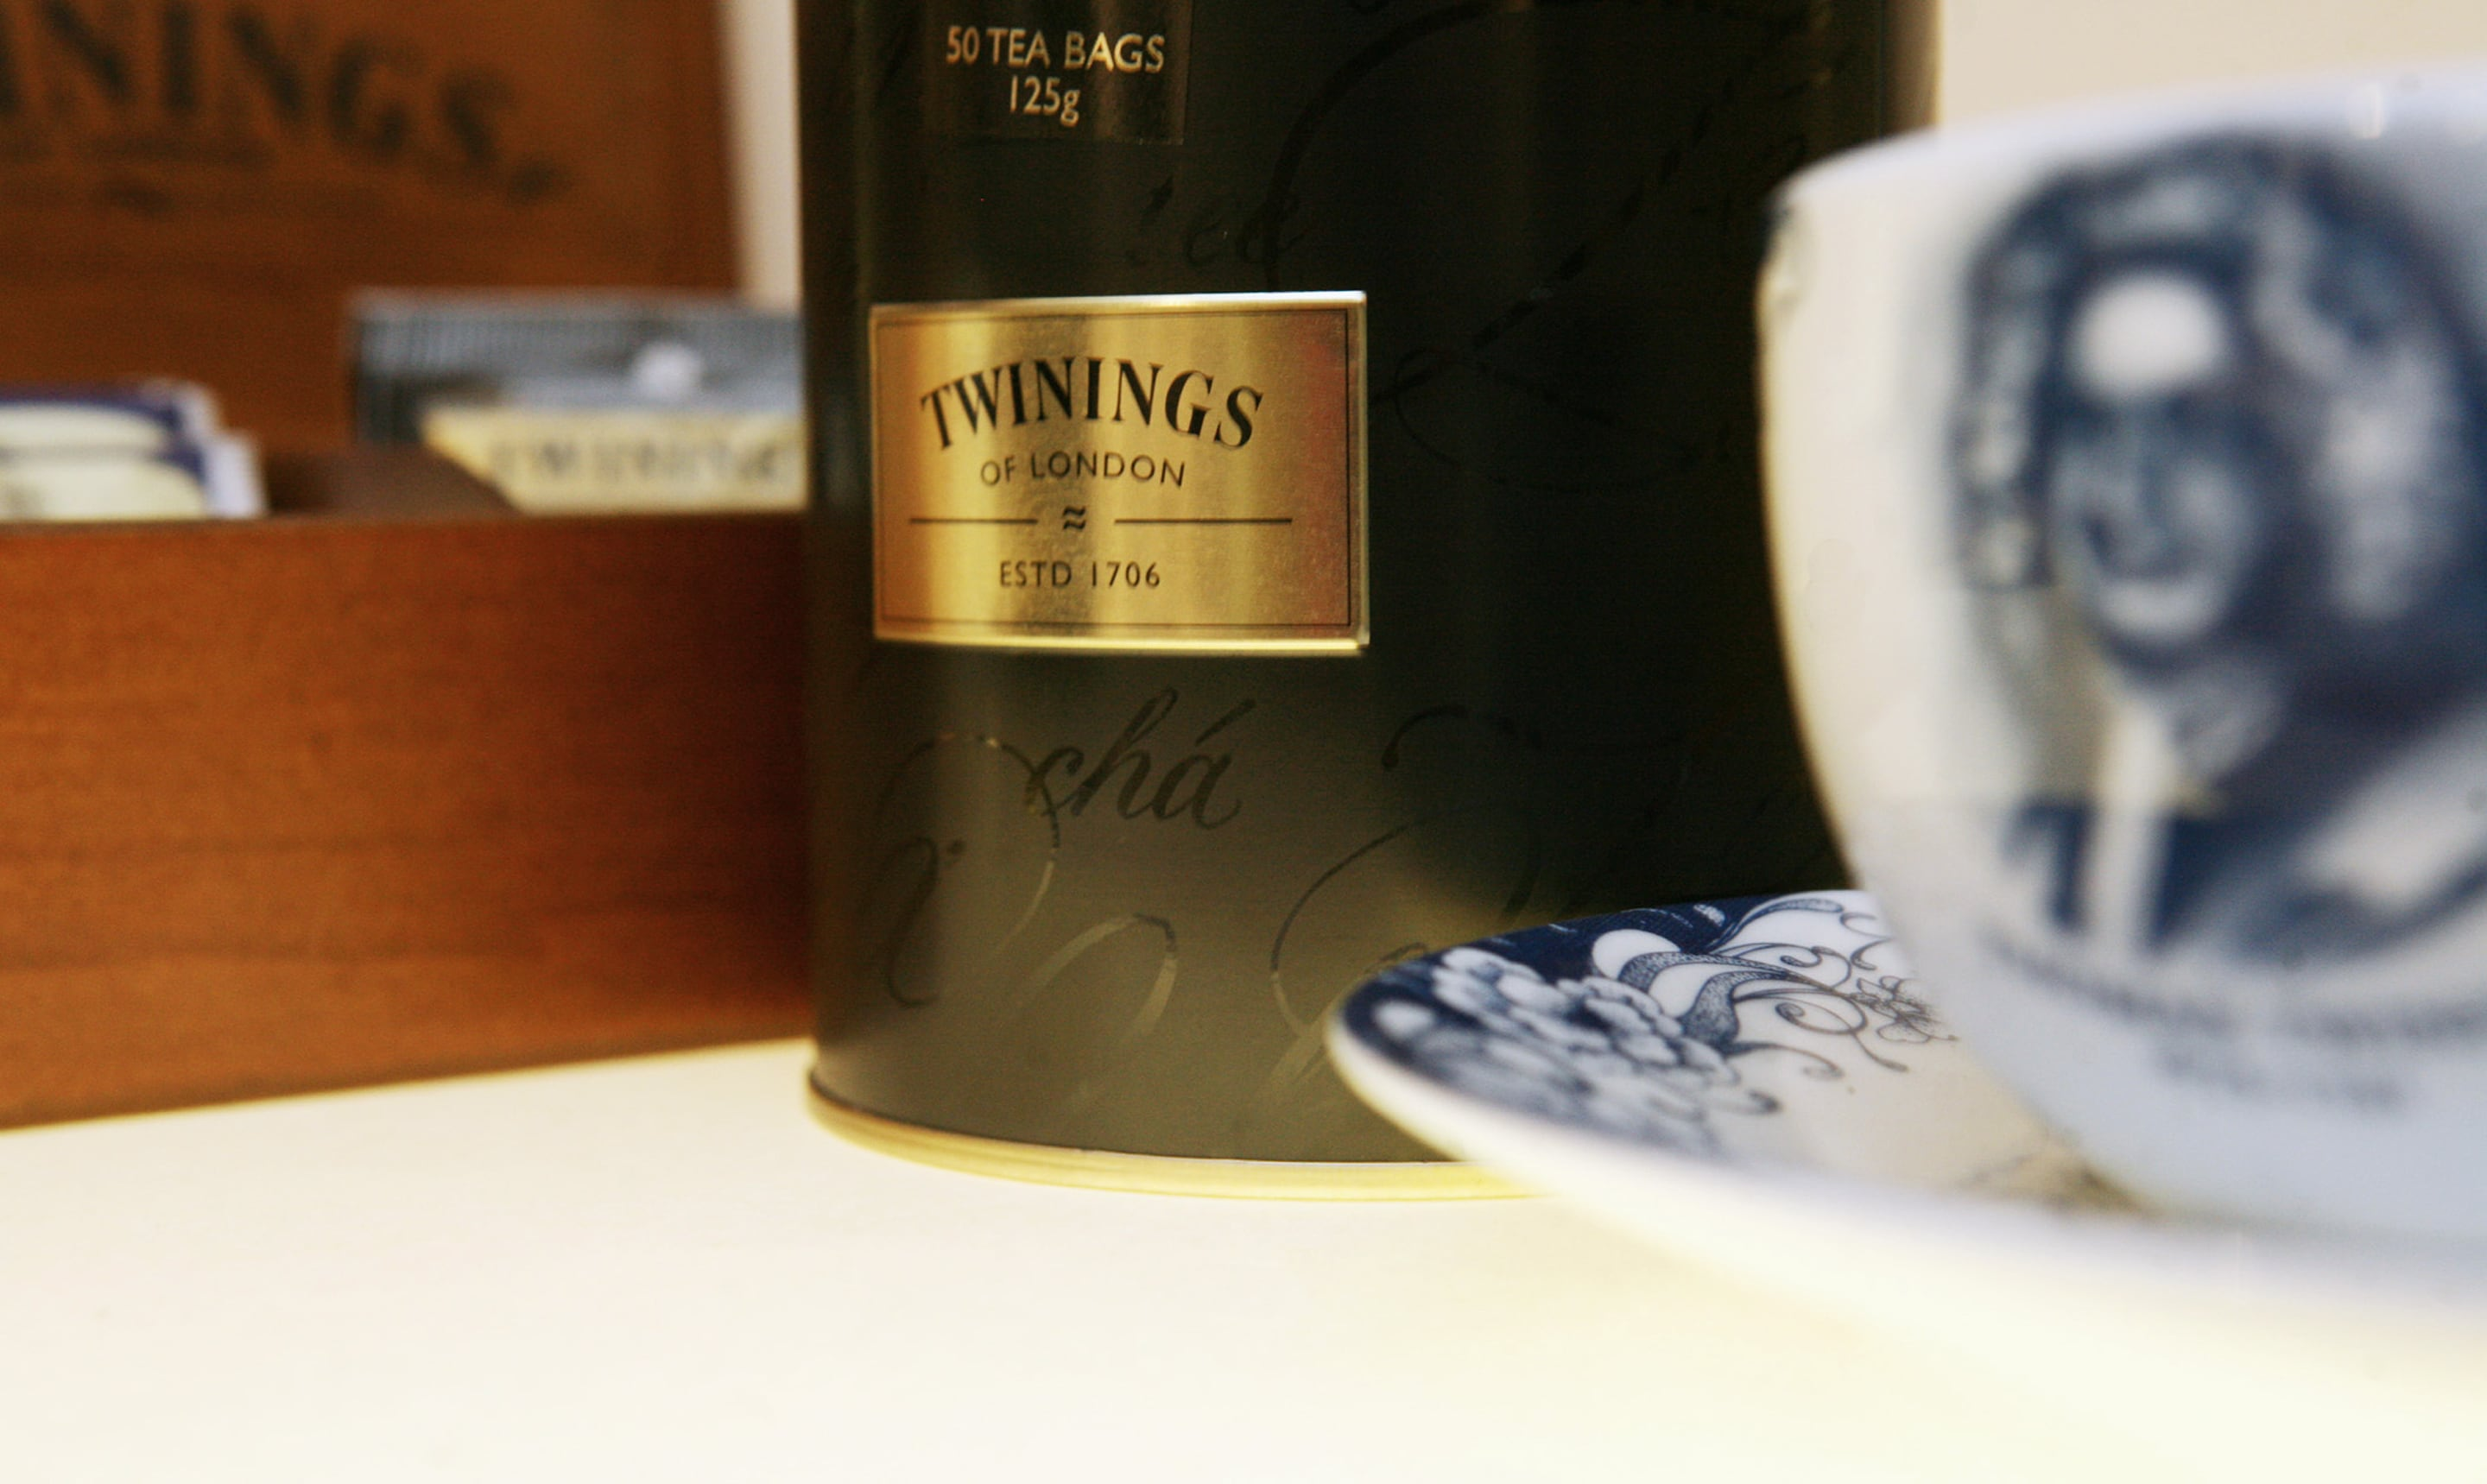 Twinings is the one of the oldest holders of a Royal Warrant